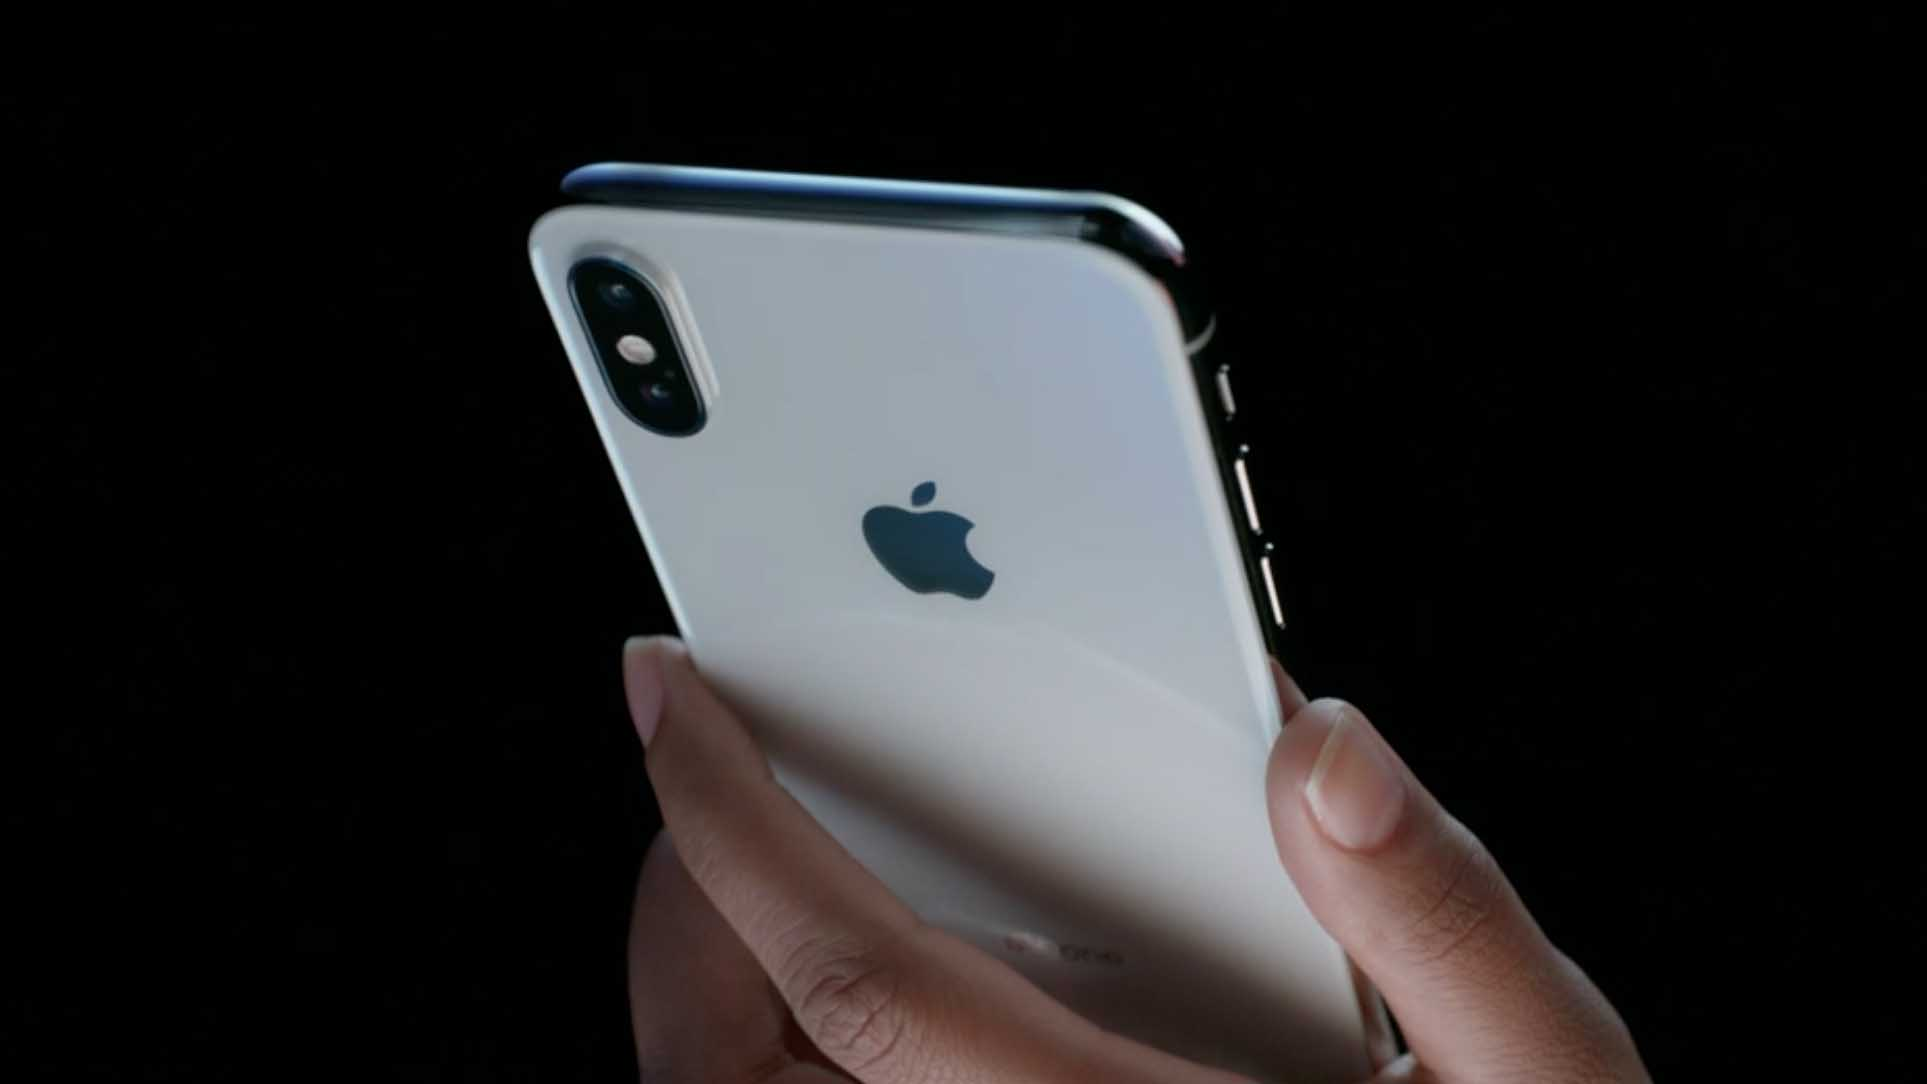 Apple iPhone 8 8 Plus and iPhone X Camera Specs revealed